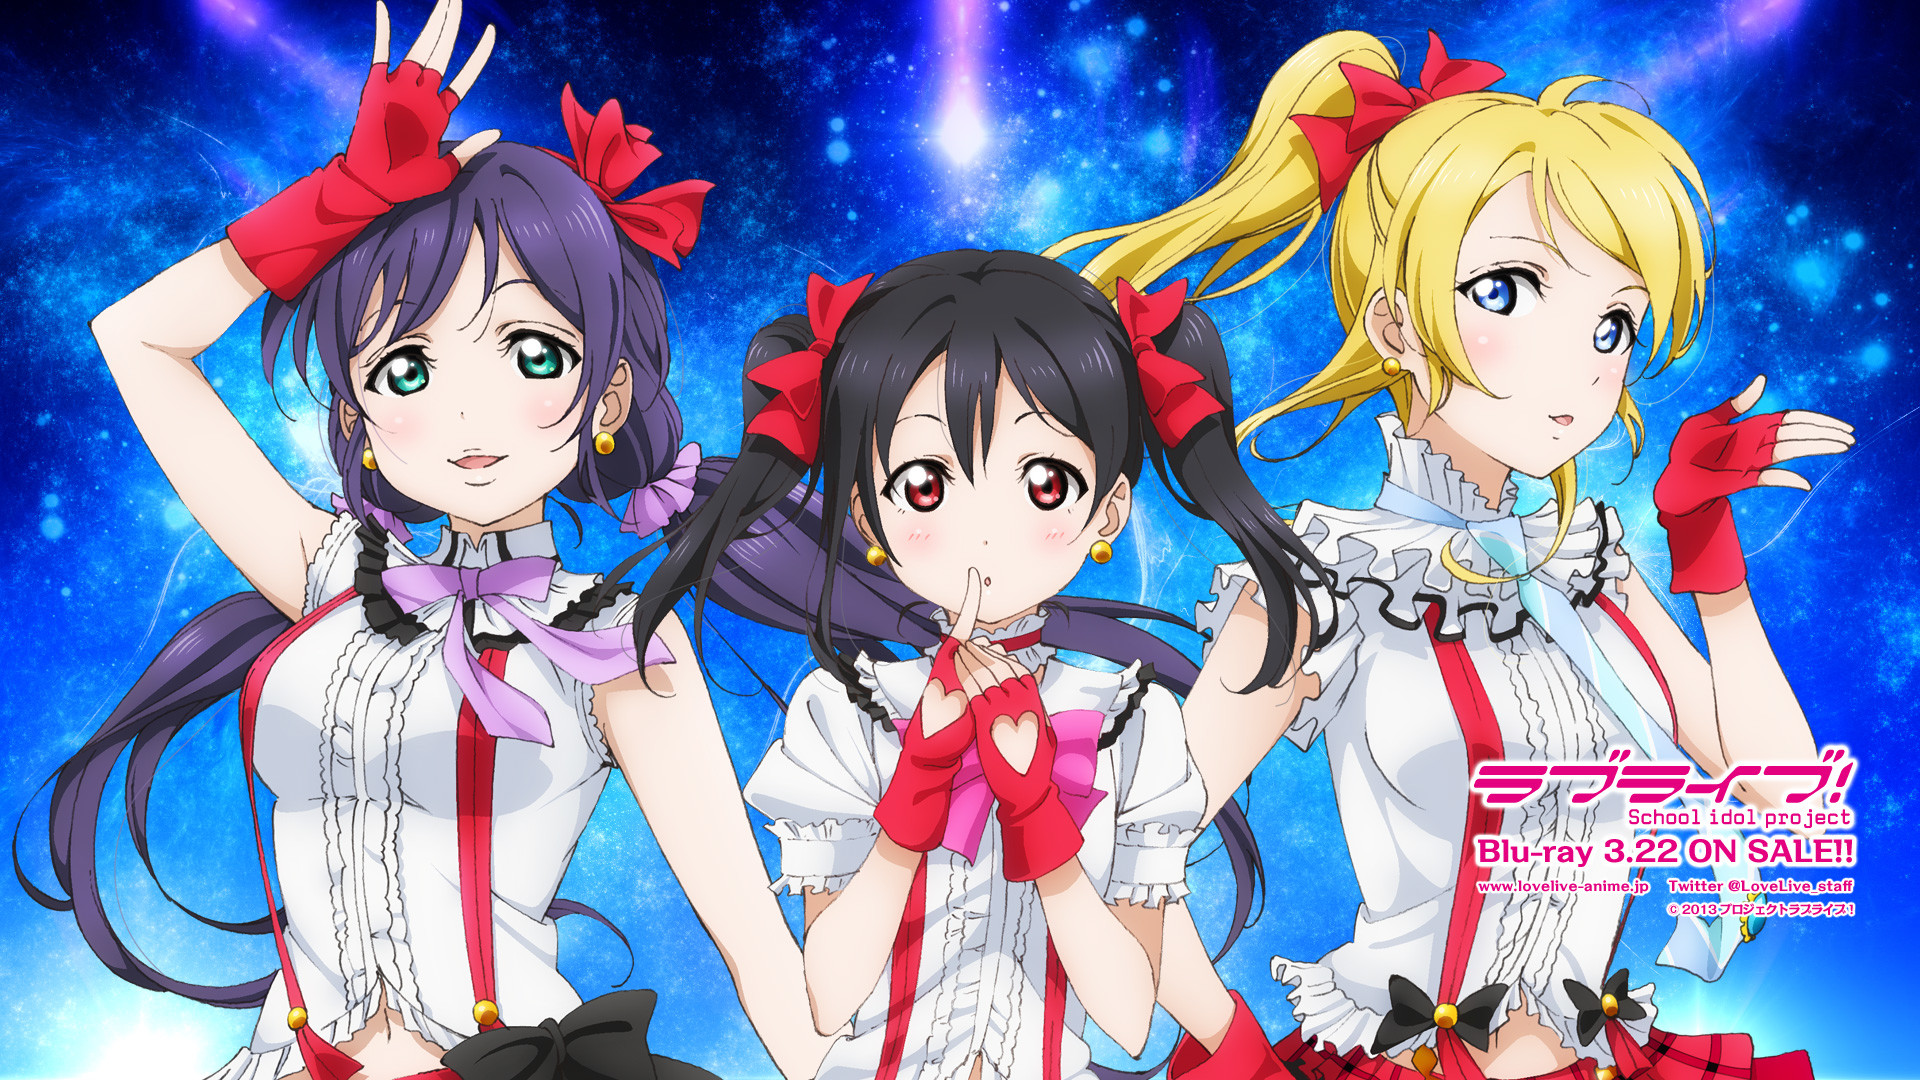 Res: 1920x1080, Love Live! download Love Live! image